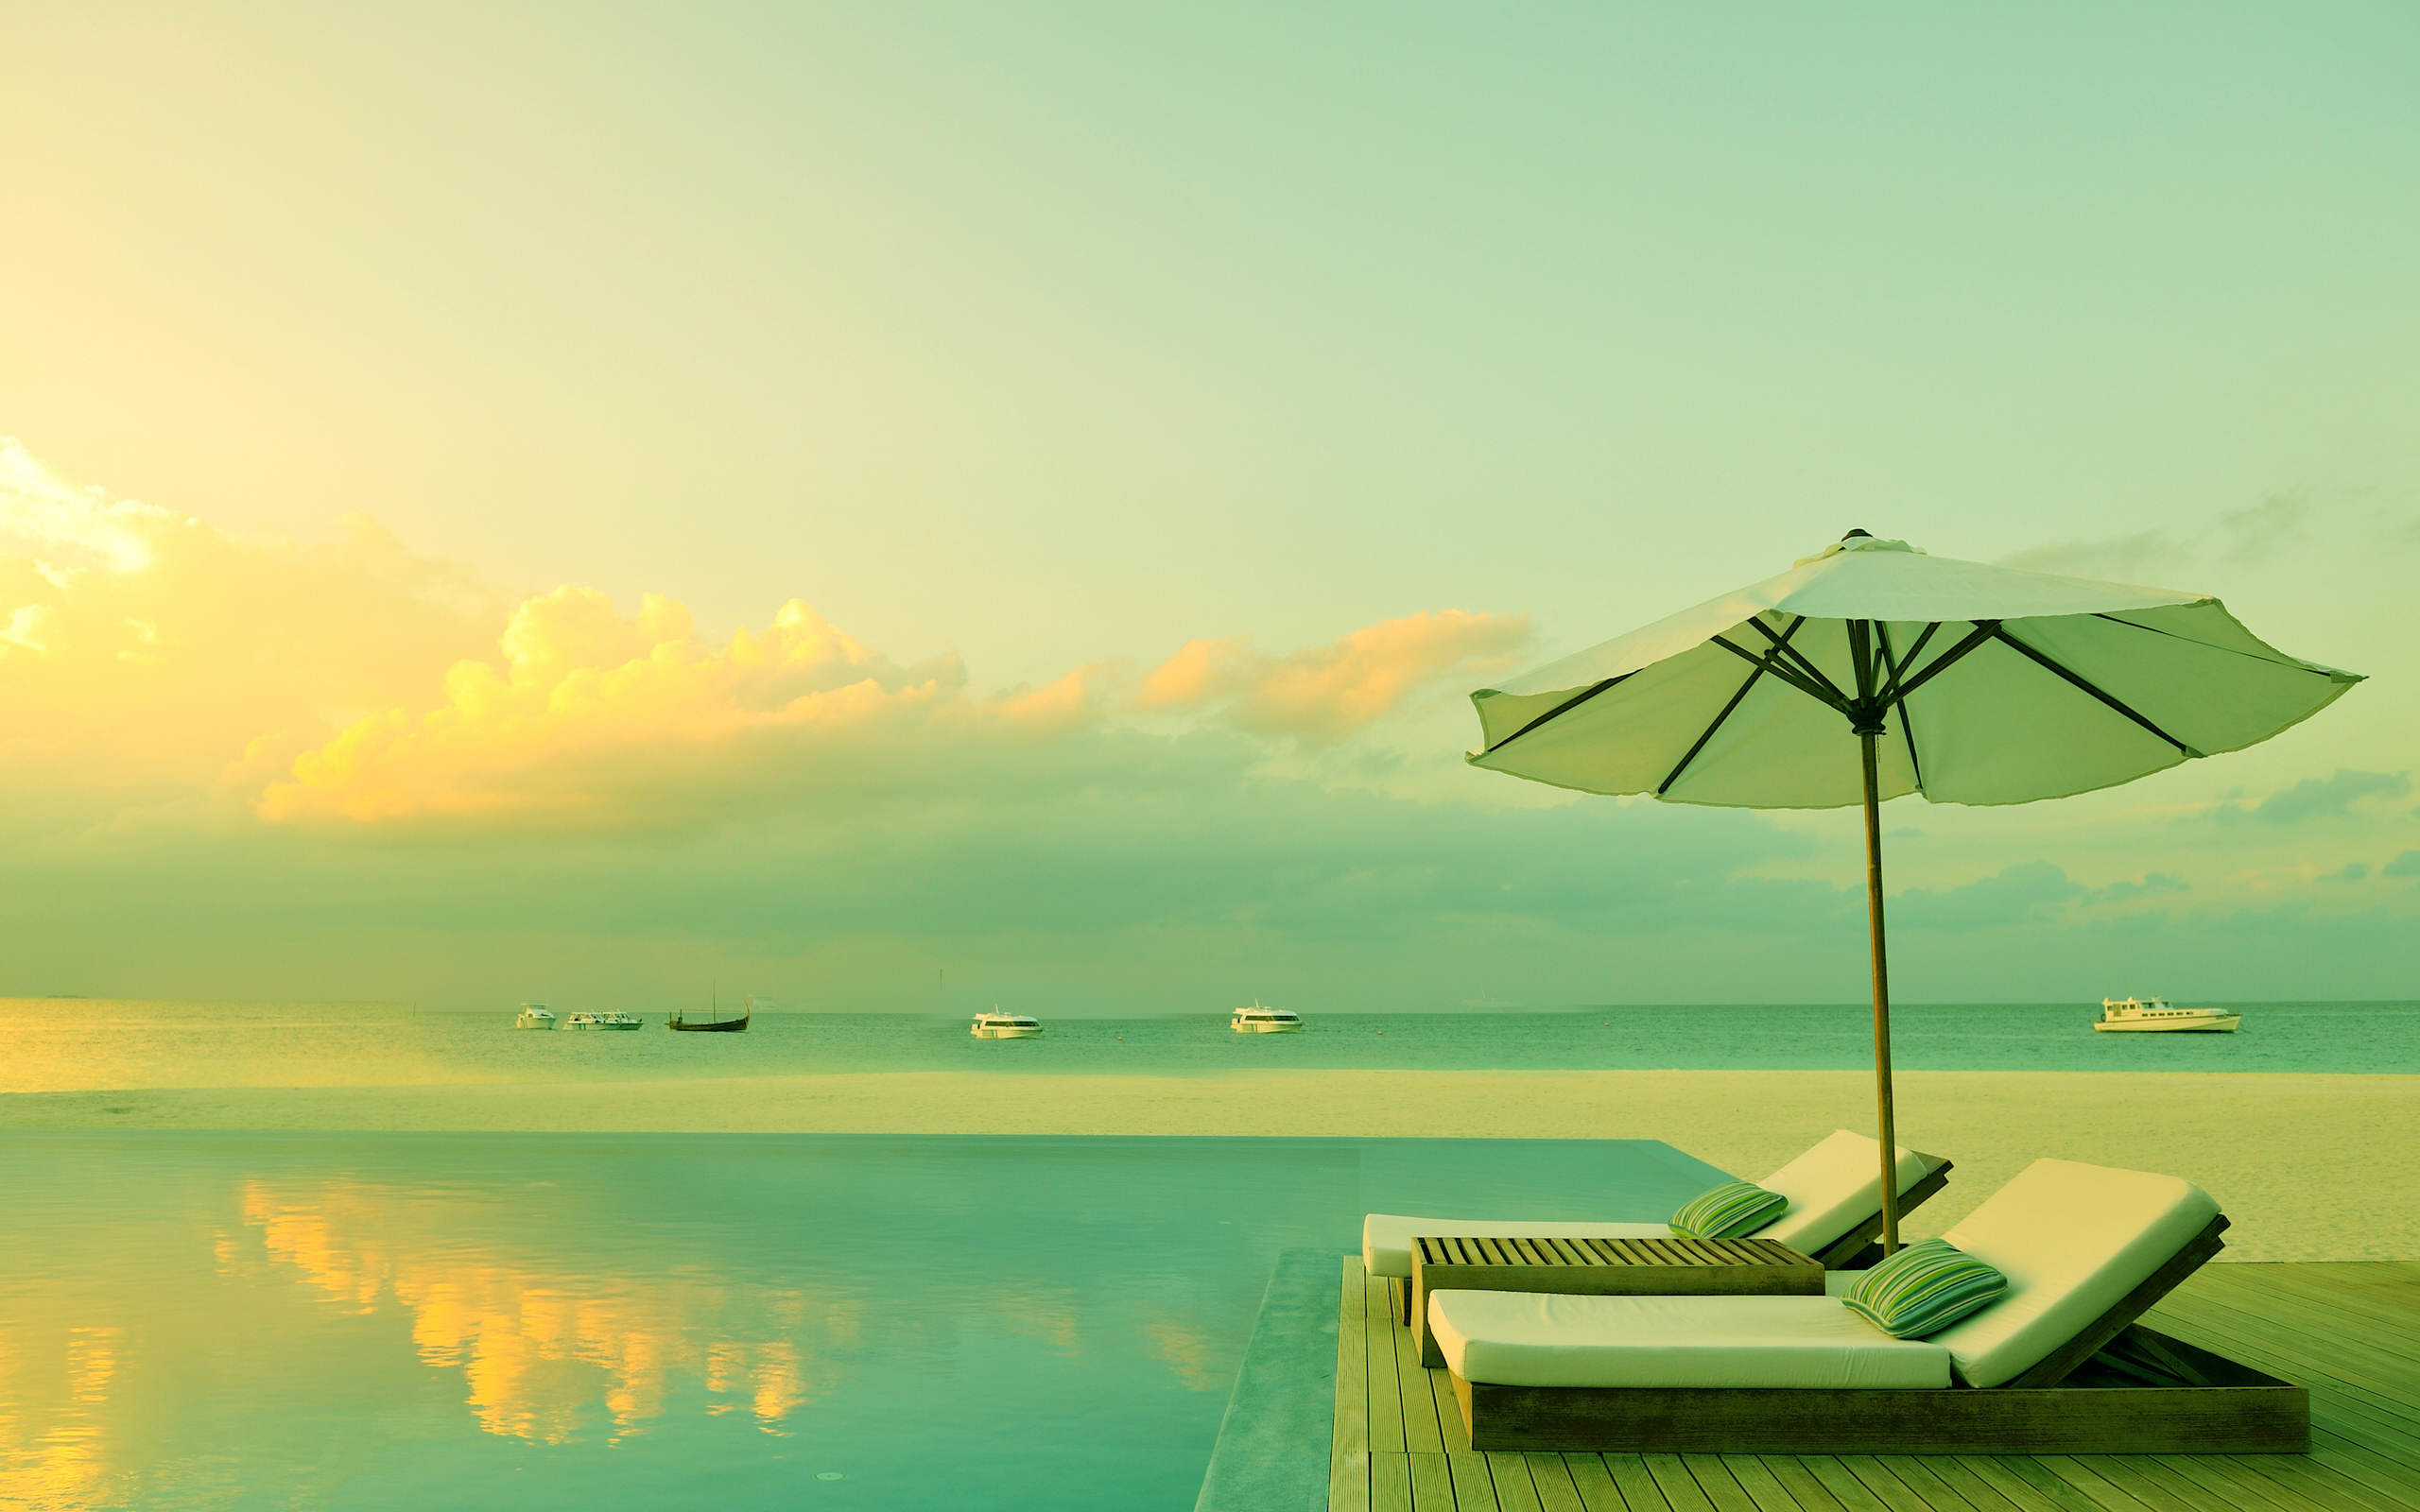 Free HD & 3D Wallpapers: Home Water Pool Beach Relaxing HD Wallpapers